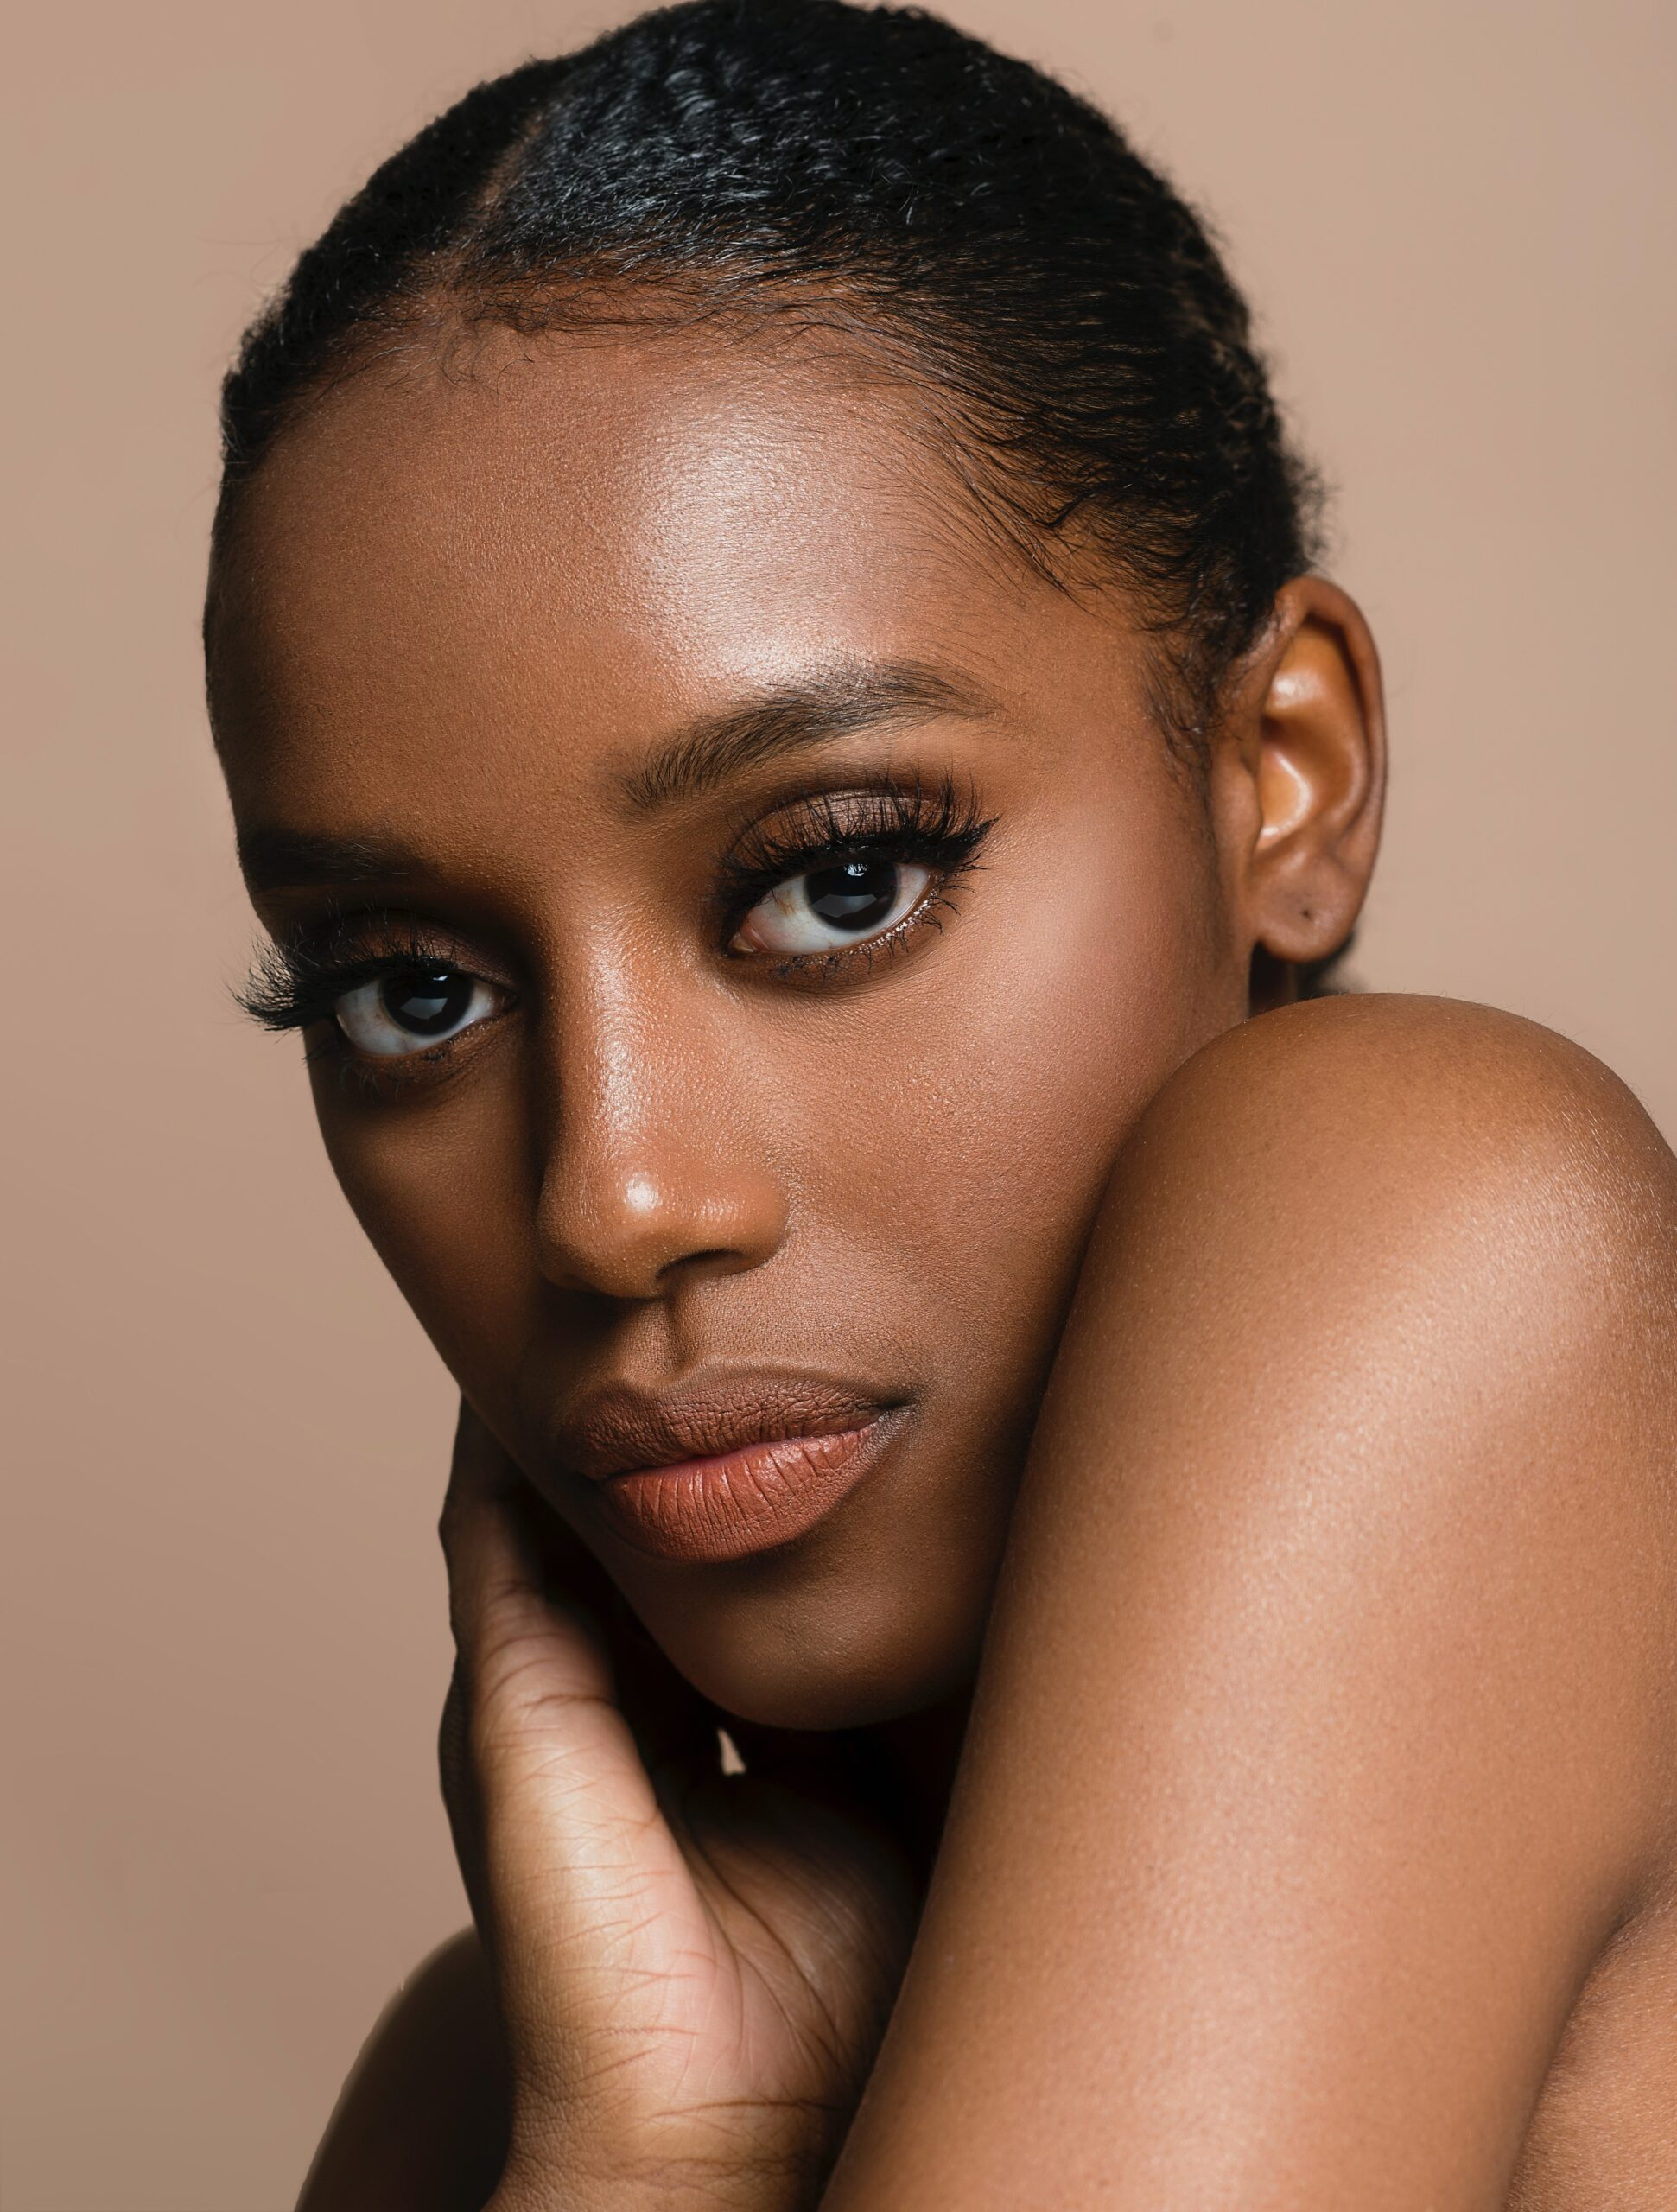 Navigation Beauty and Self Worth as a Black Woman in a Patriarchal Society